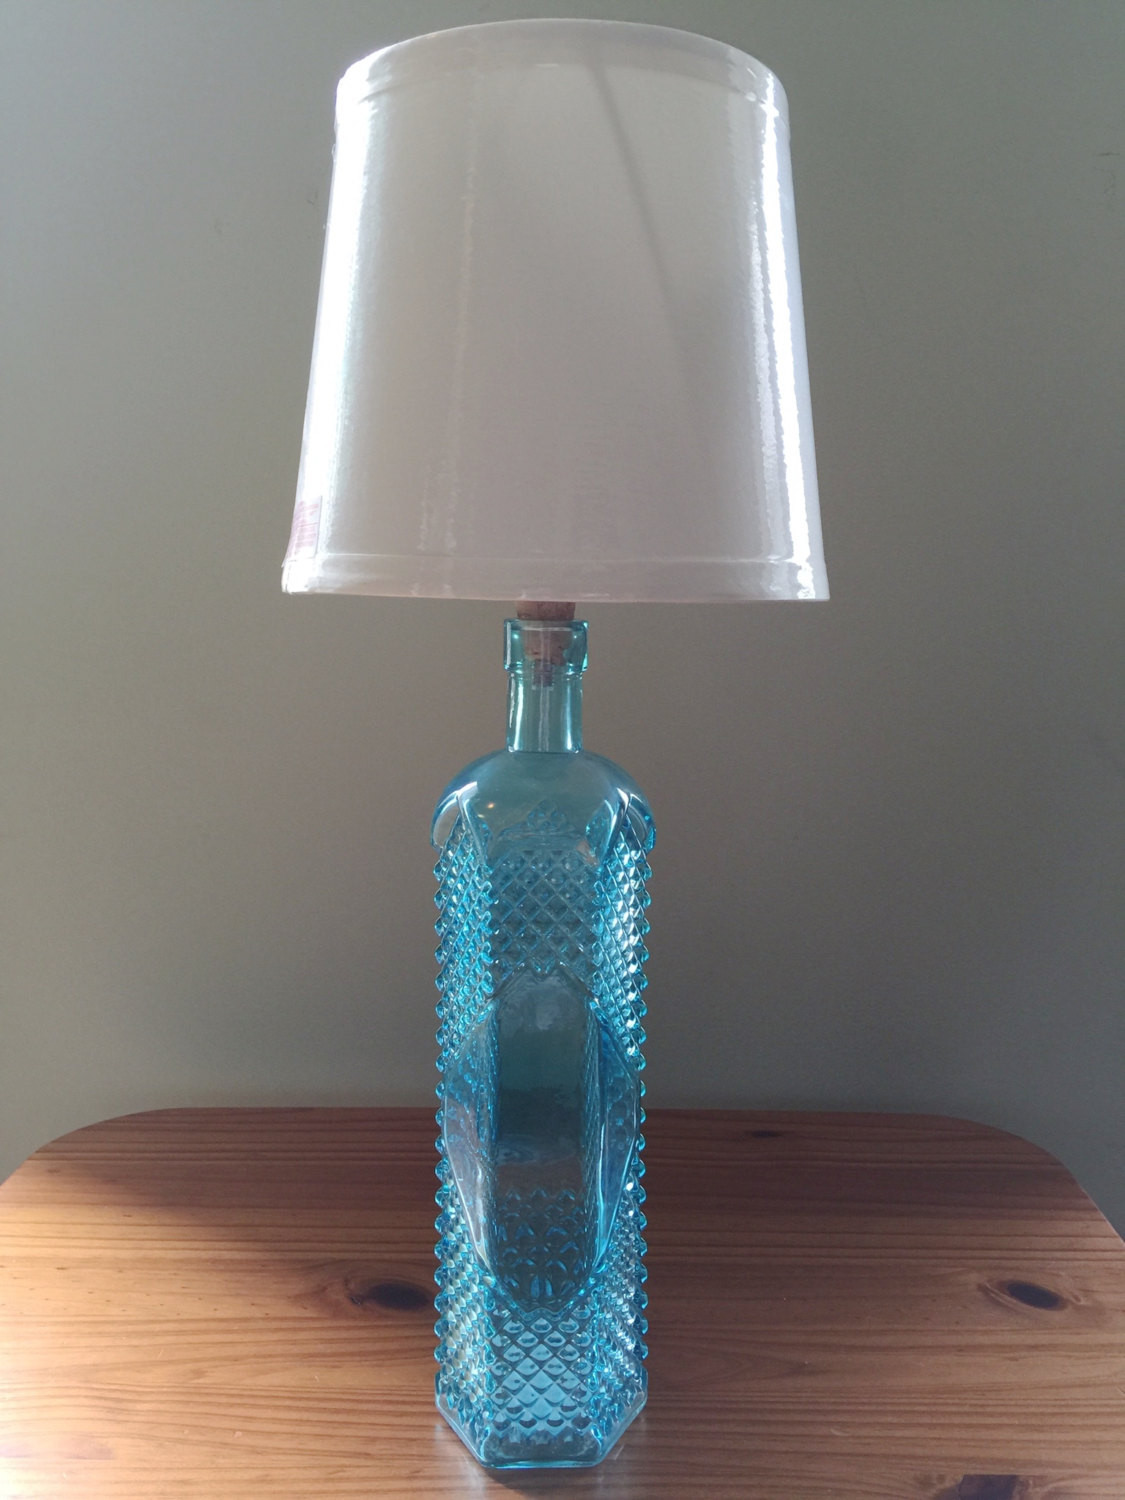 Best ideas about Small Desk Lamp . Save or Pin Blue Glass Table Lamp Pillar Table Lamp Small Table Light Now.